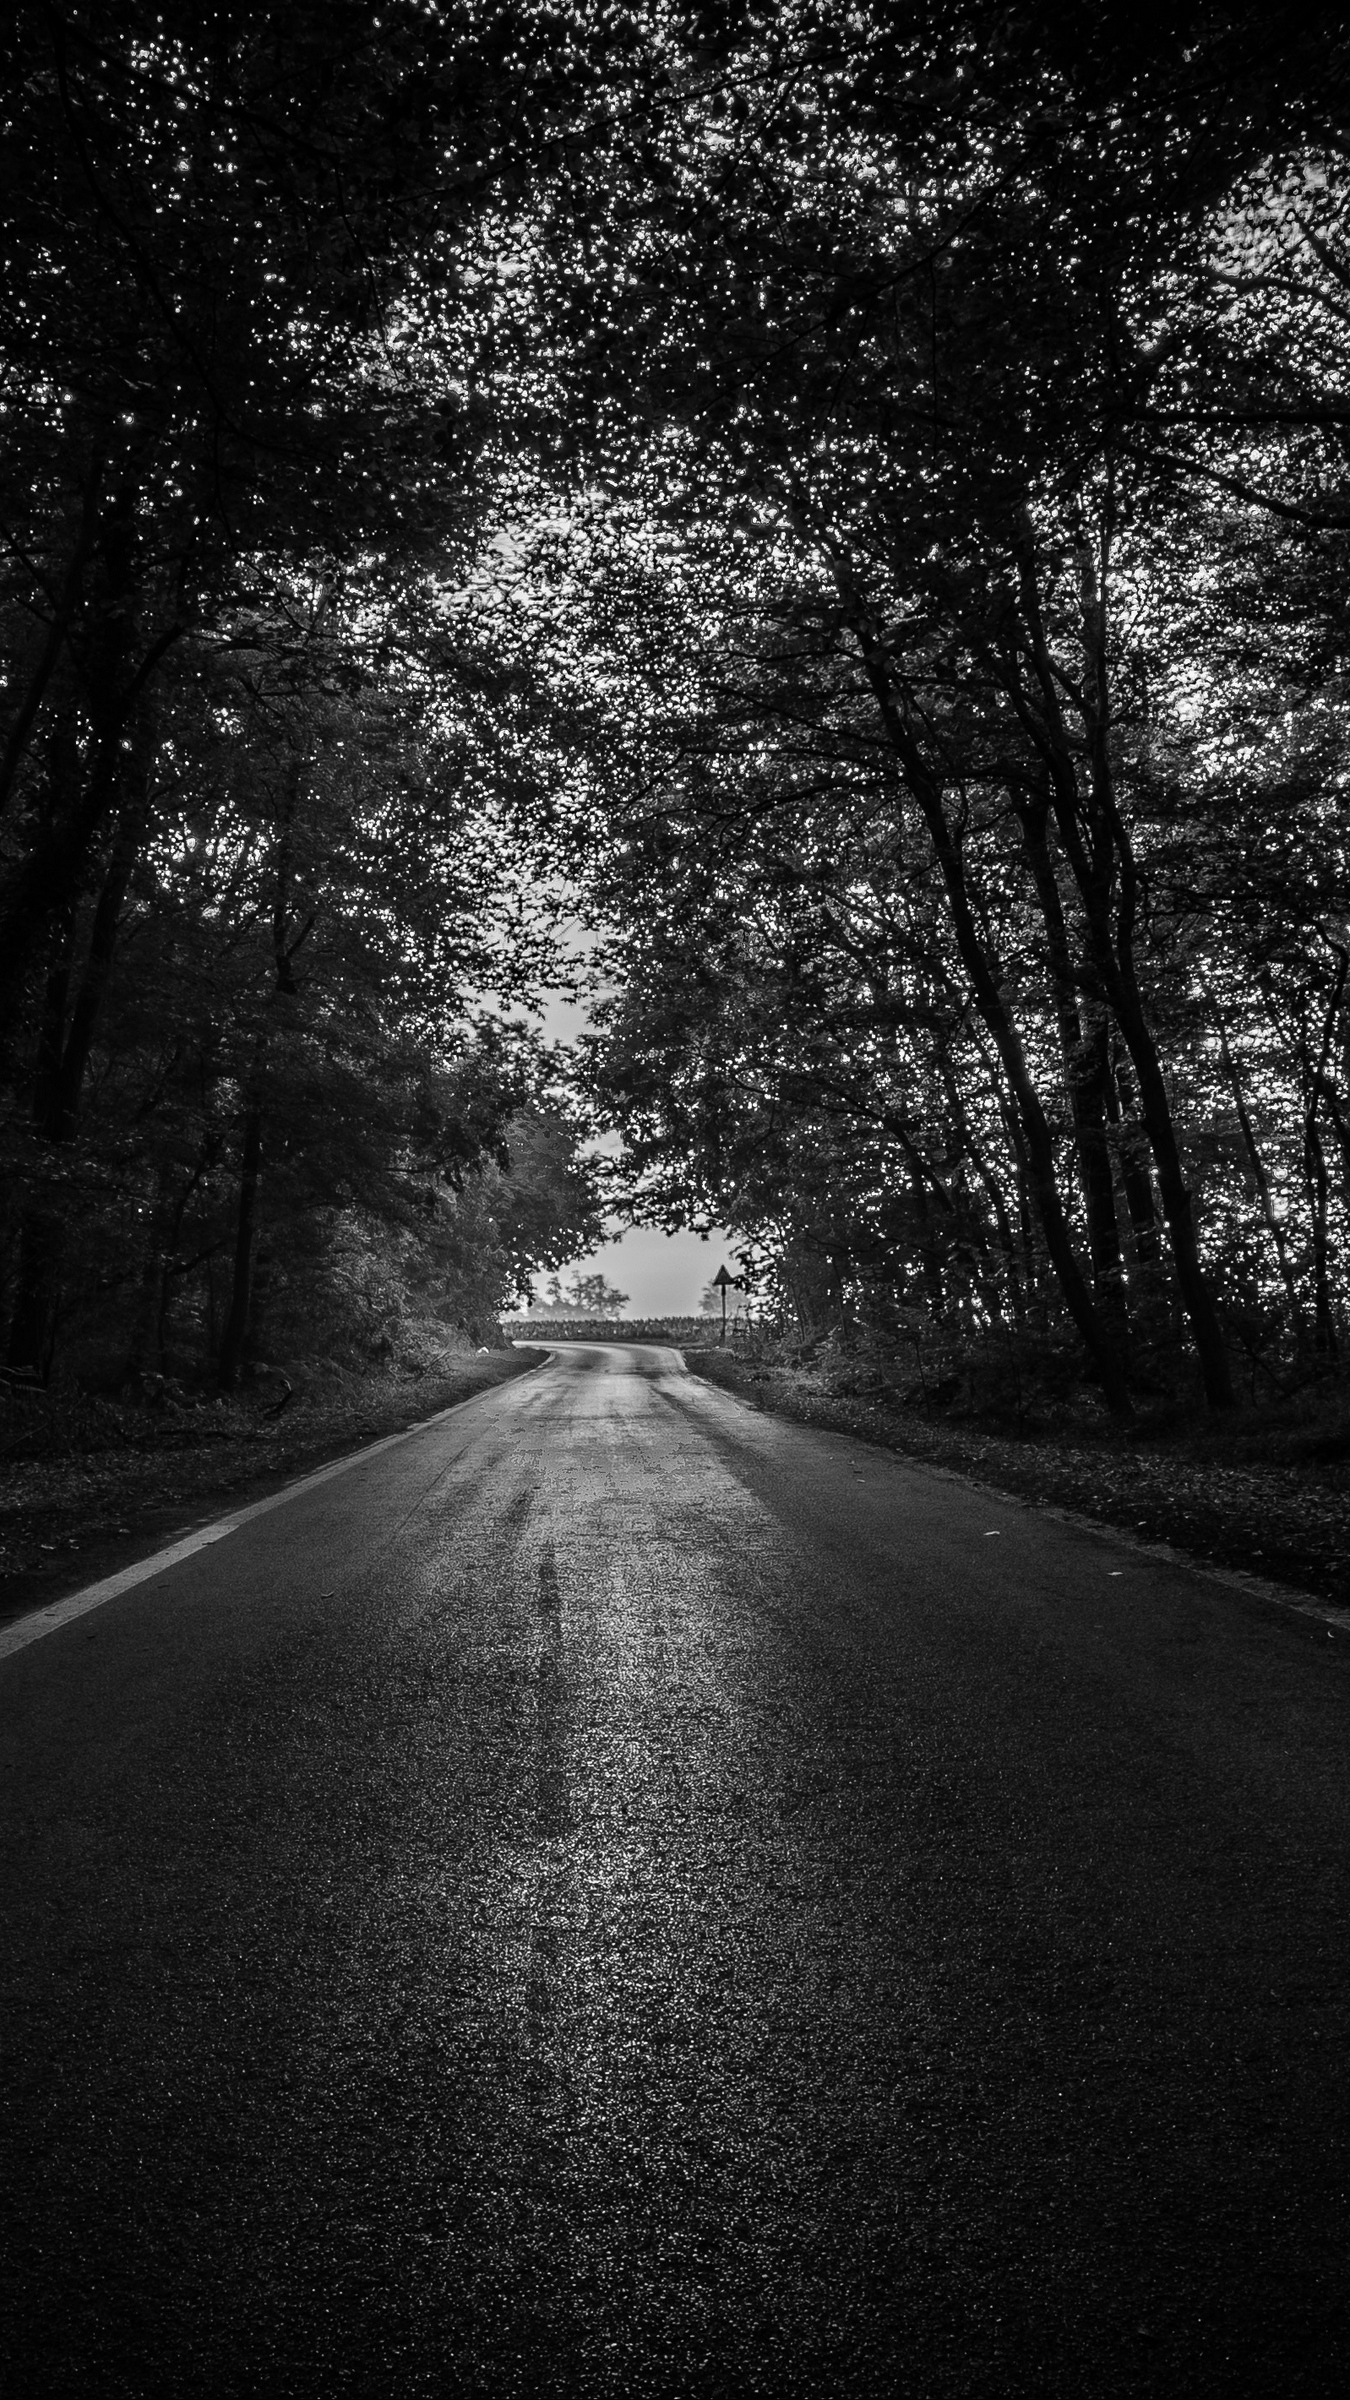 Wallpaper Road Trees Bw Dark Forest Iphone Dark Forest Wallpaper Hd 2412848 Hd Wallpaper Backgrounds Download